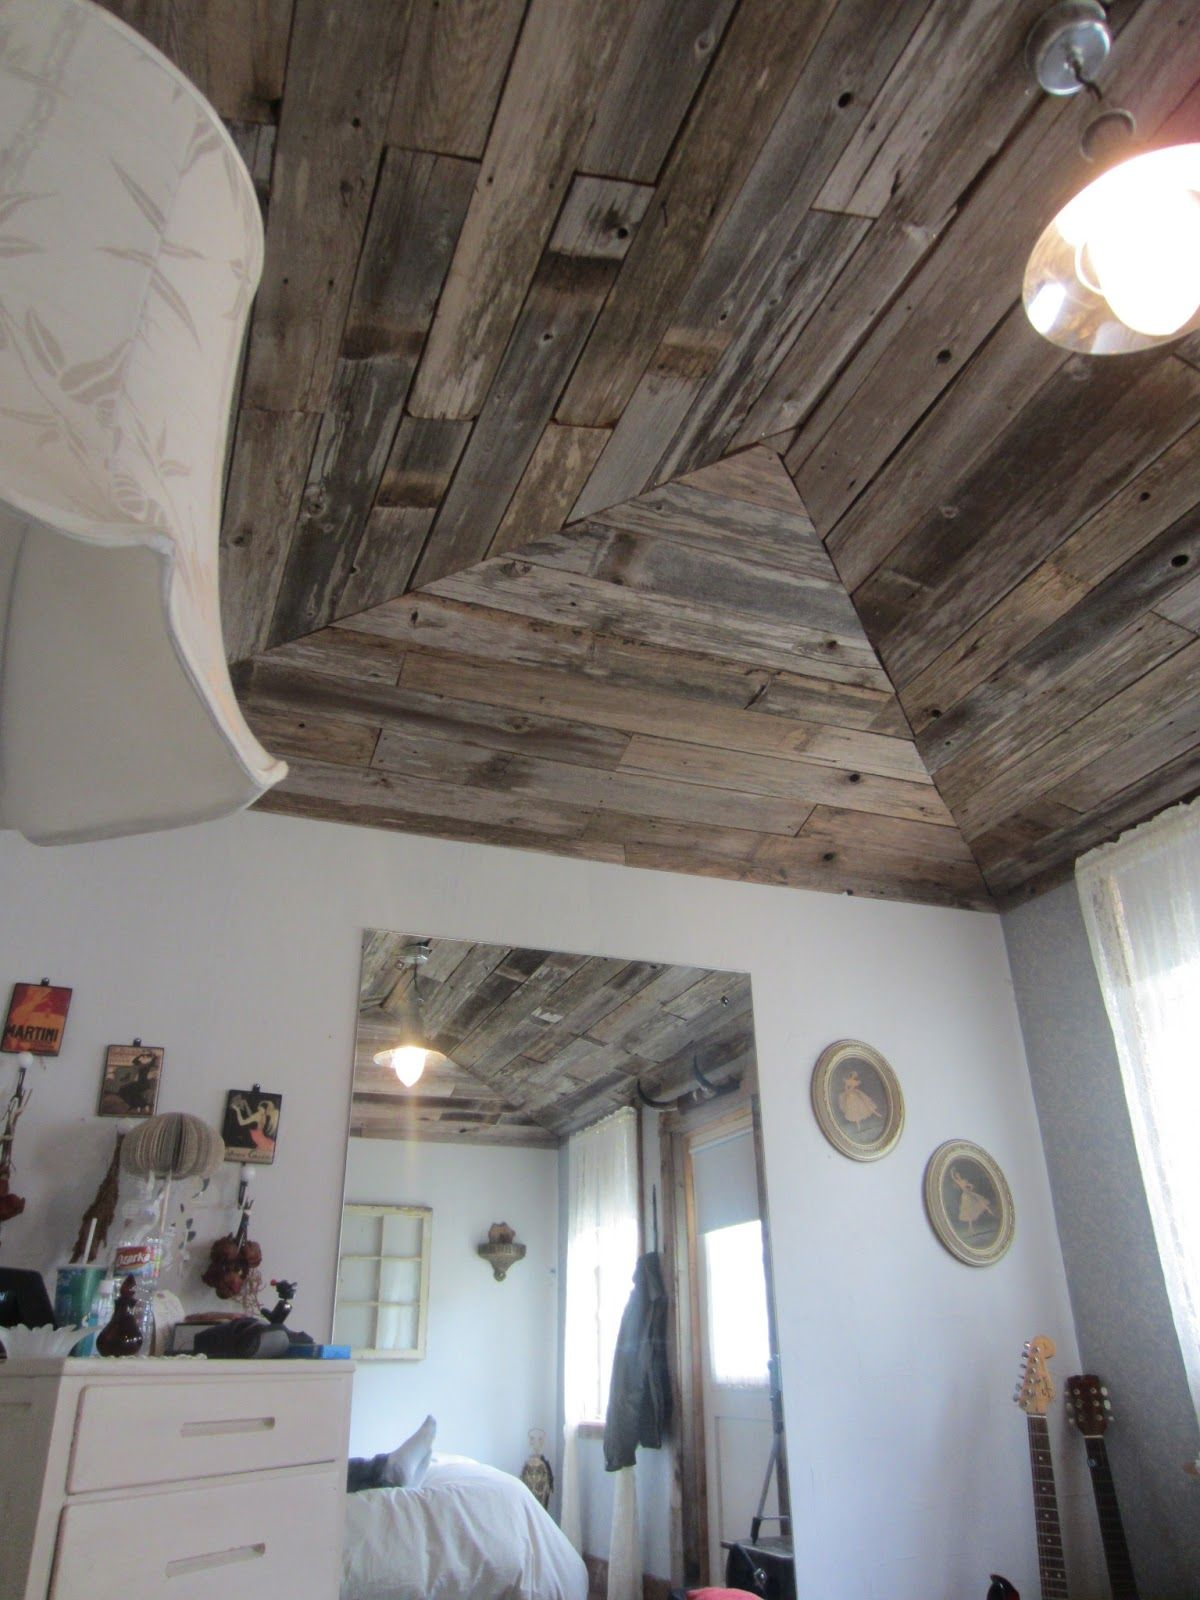 Barn Board And Fence Lumber Rustic Ceilings Siding For Your Tiny House Cabin